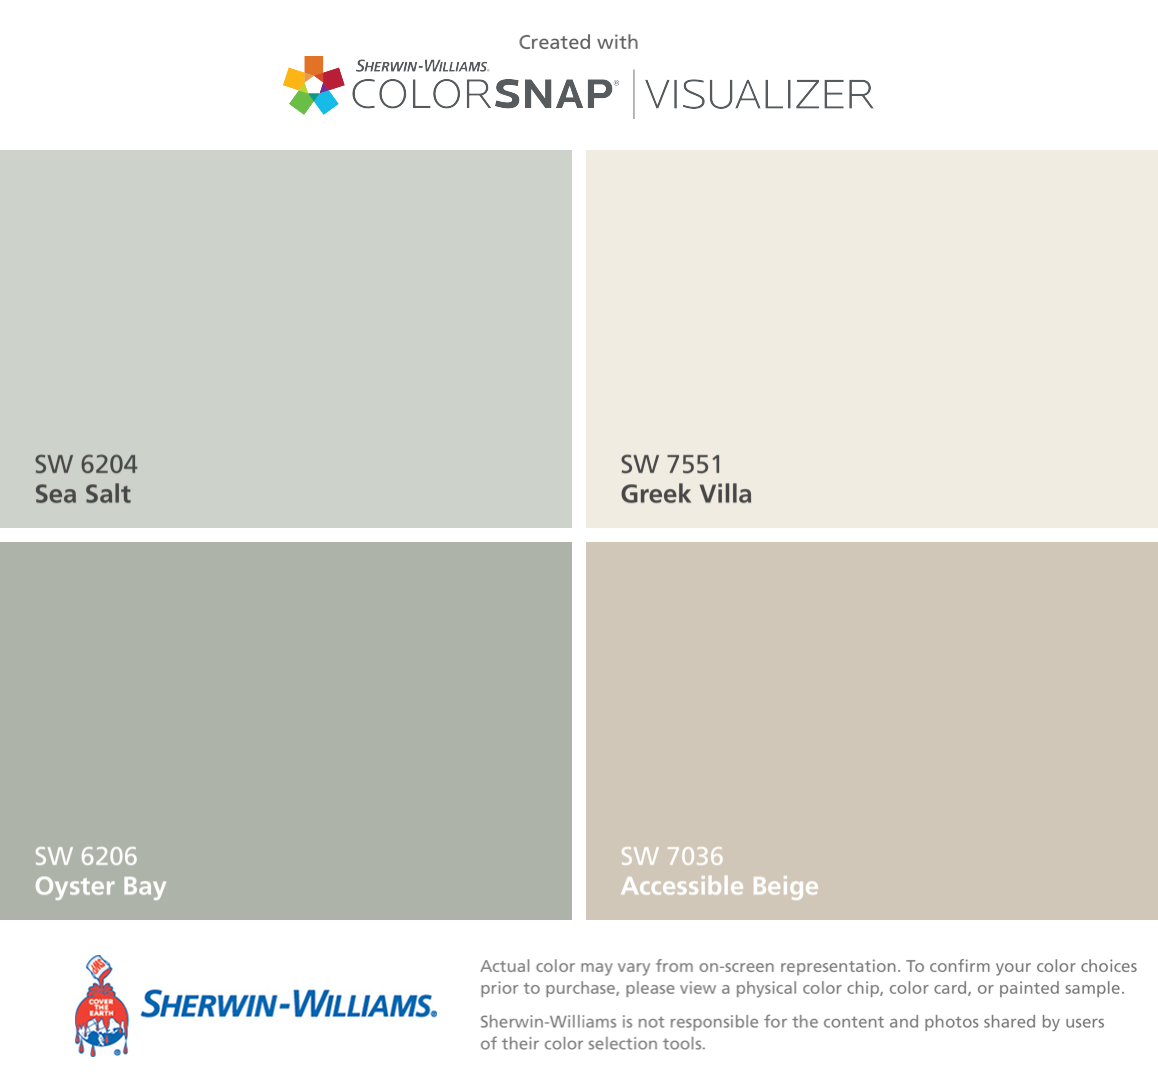 Sherwin Williams Greek Villa - I found these colors with colorsnap visualizer for iphone by sherwin williams sea salt sw oyster bay sw greek villa sw accessible beige sw